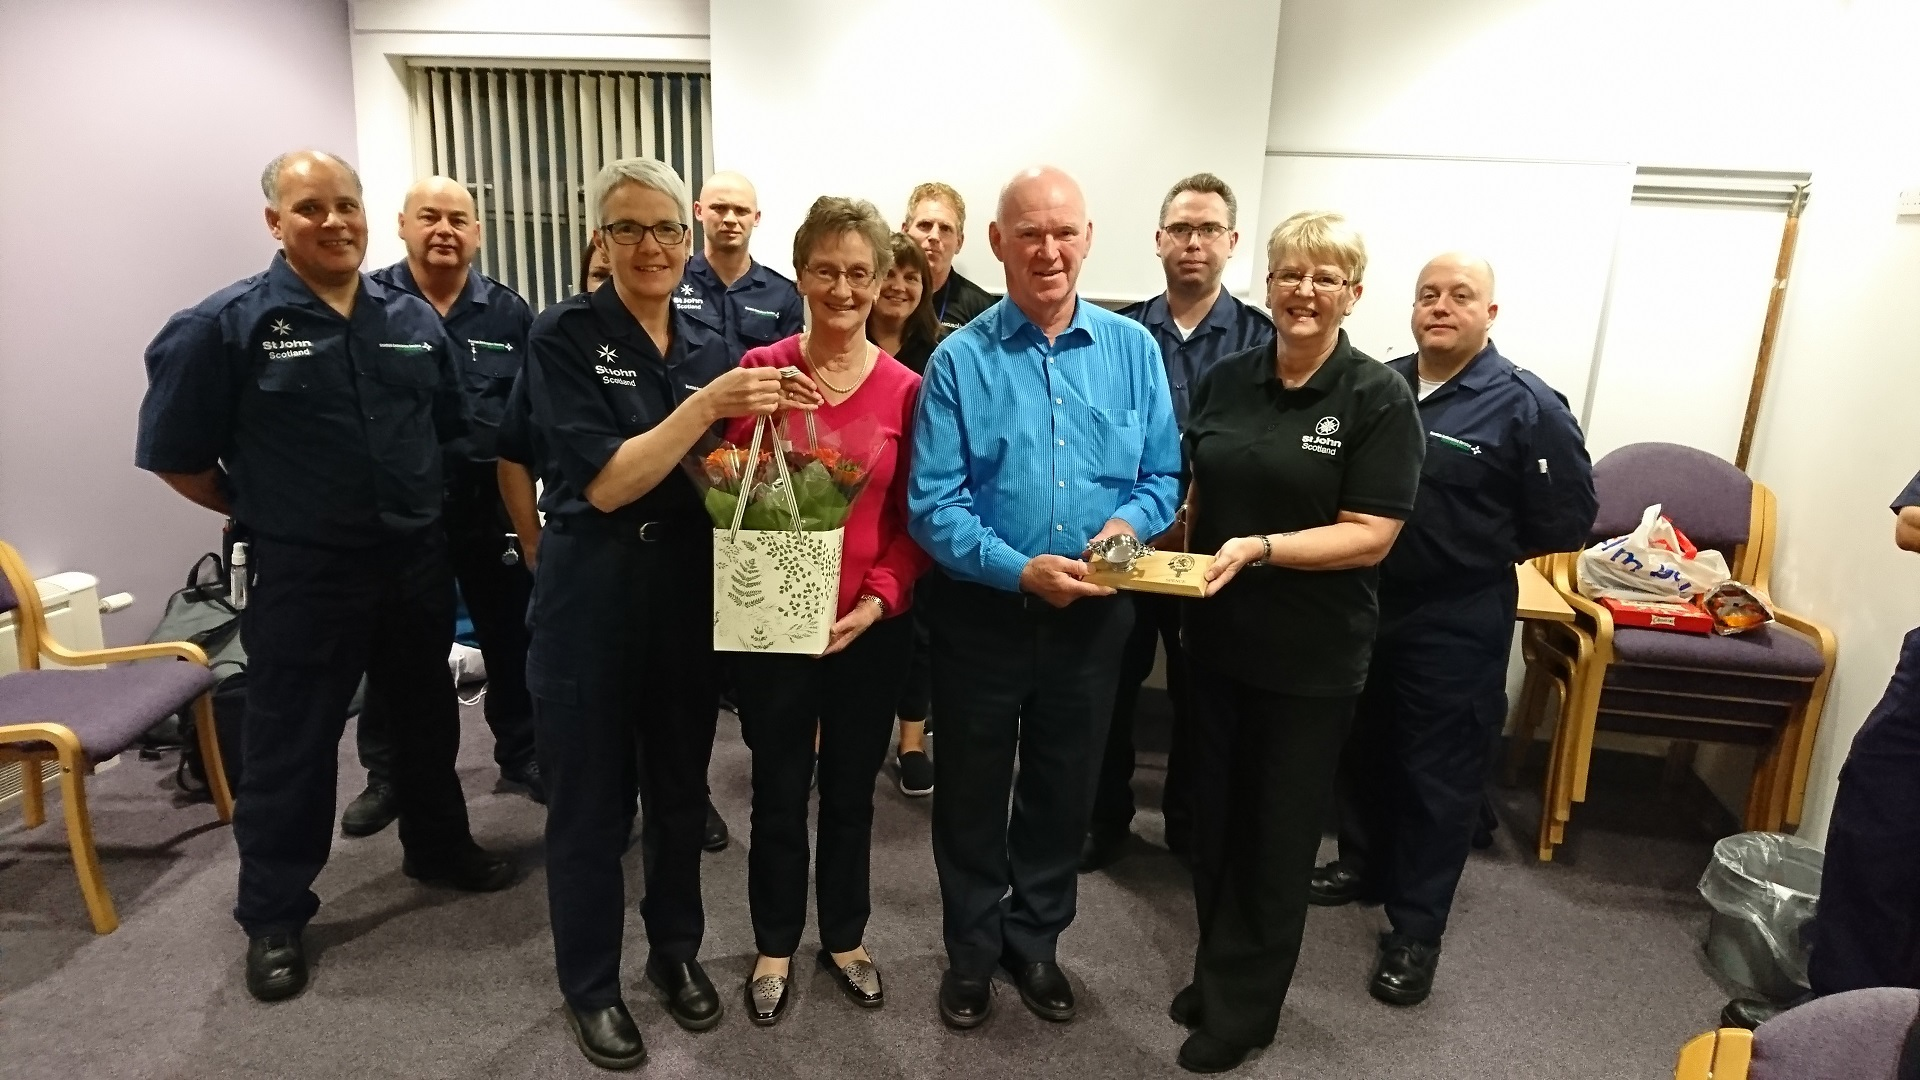 Bill and his wife and presented with gifts by the team.